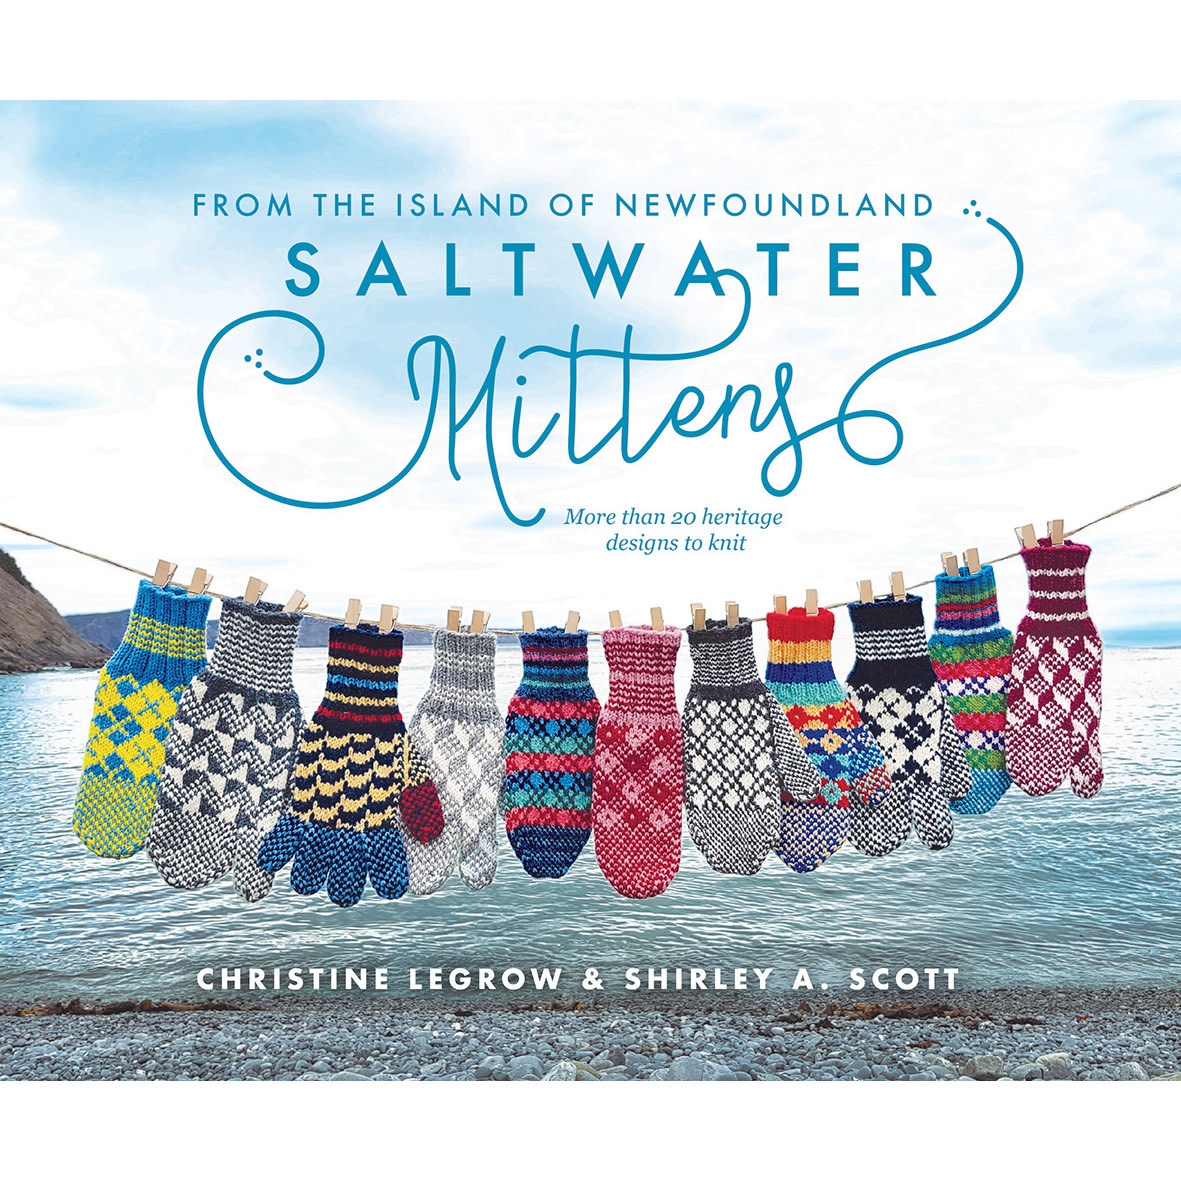 SALTWATER MITTENS FROM THE ISLAND OF NEWFOUNDLAND by CHRISTINE LEGROW & SHIRLEY A. SCOTT